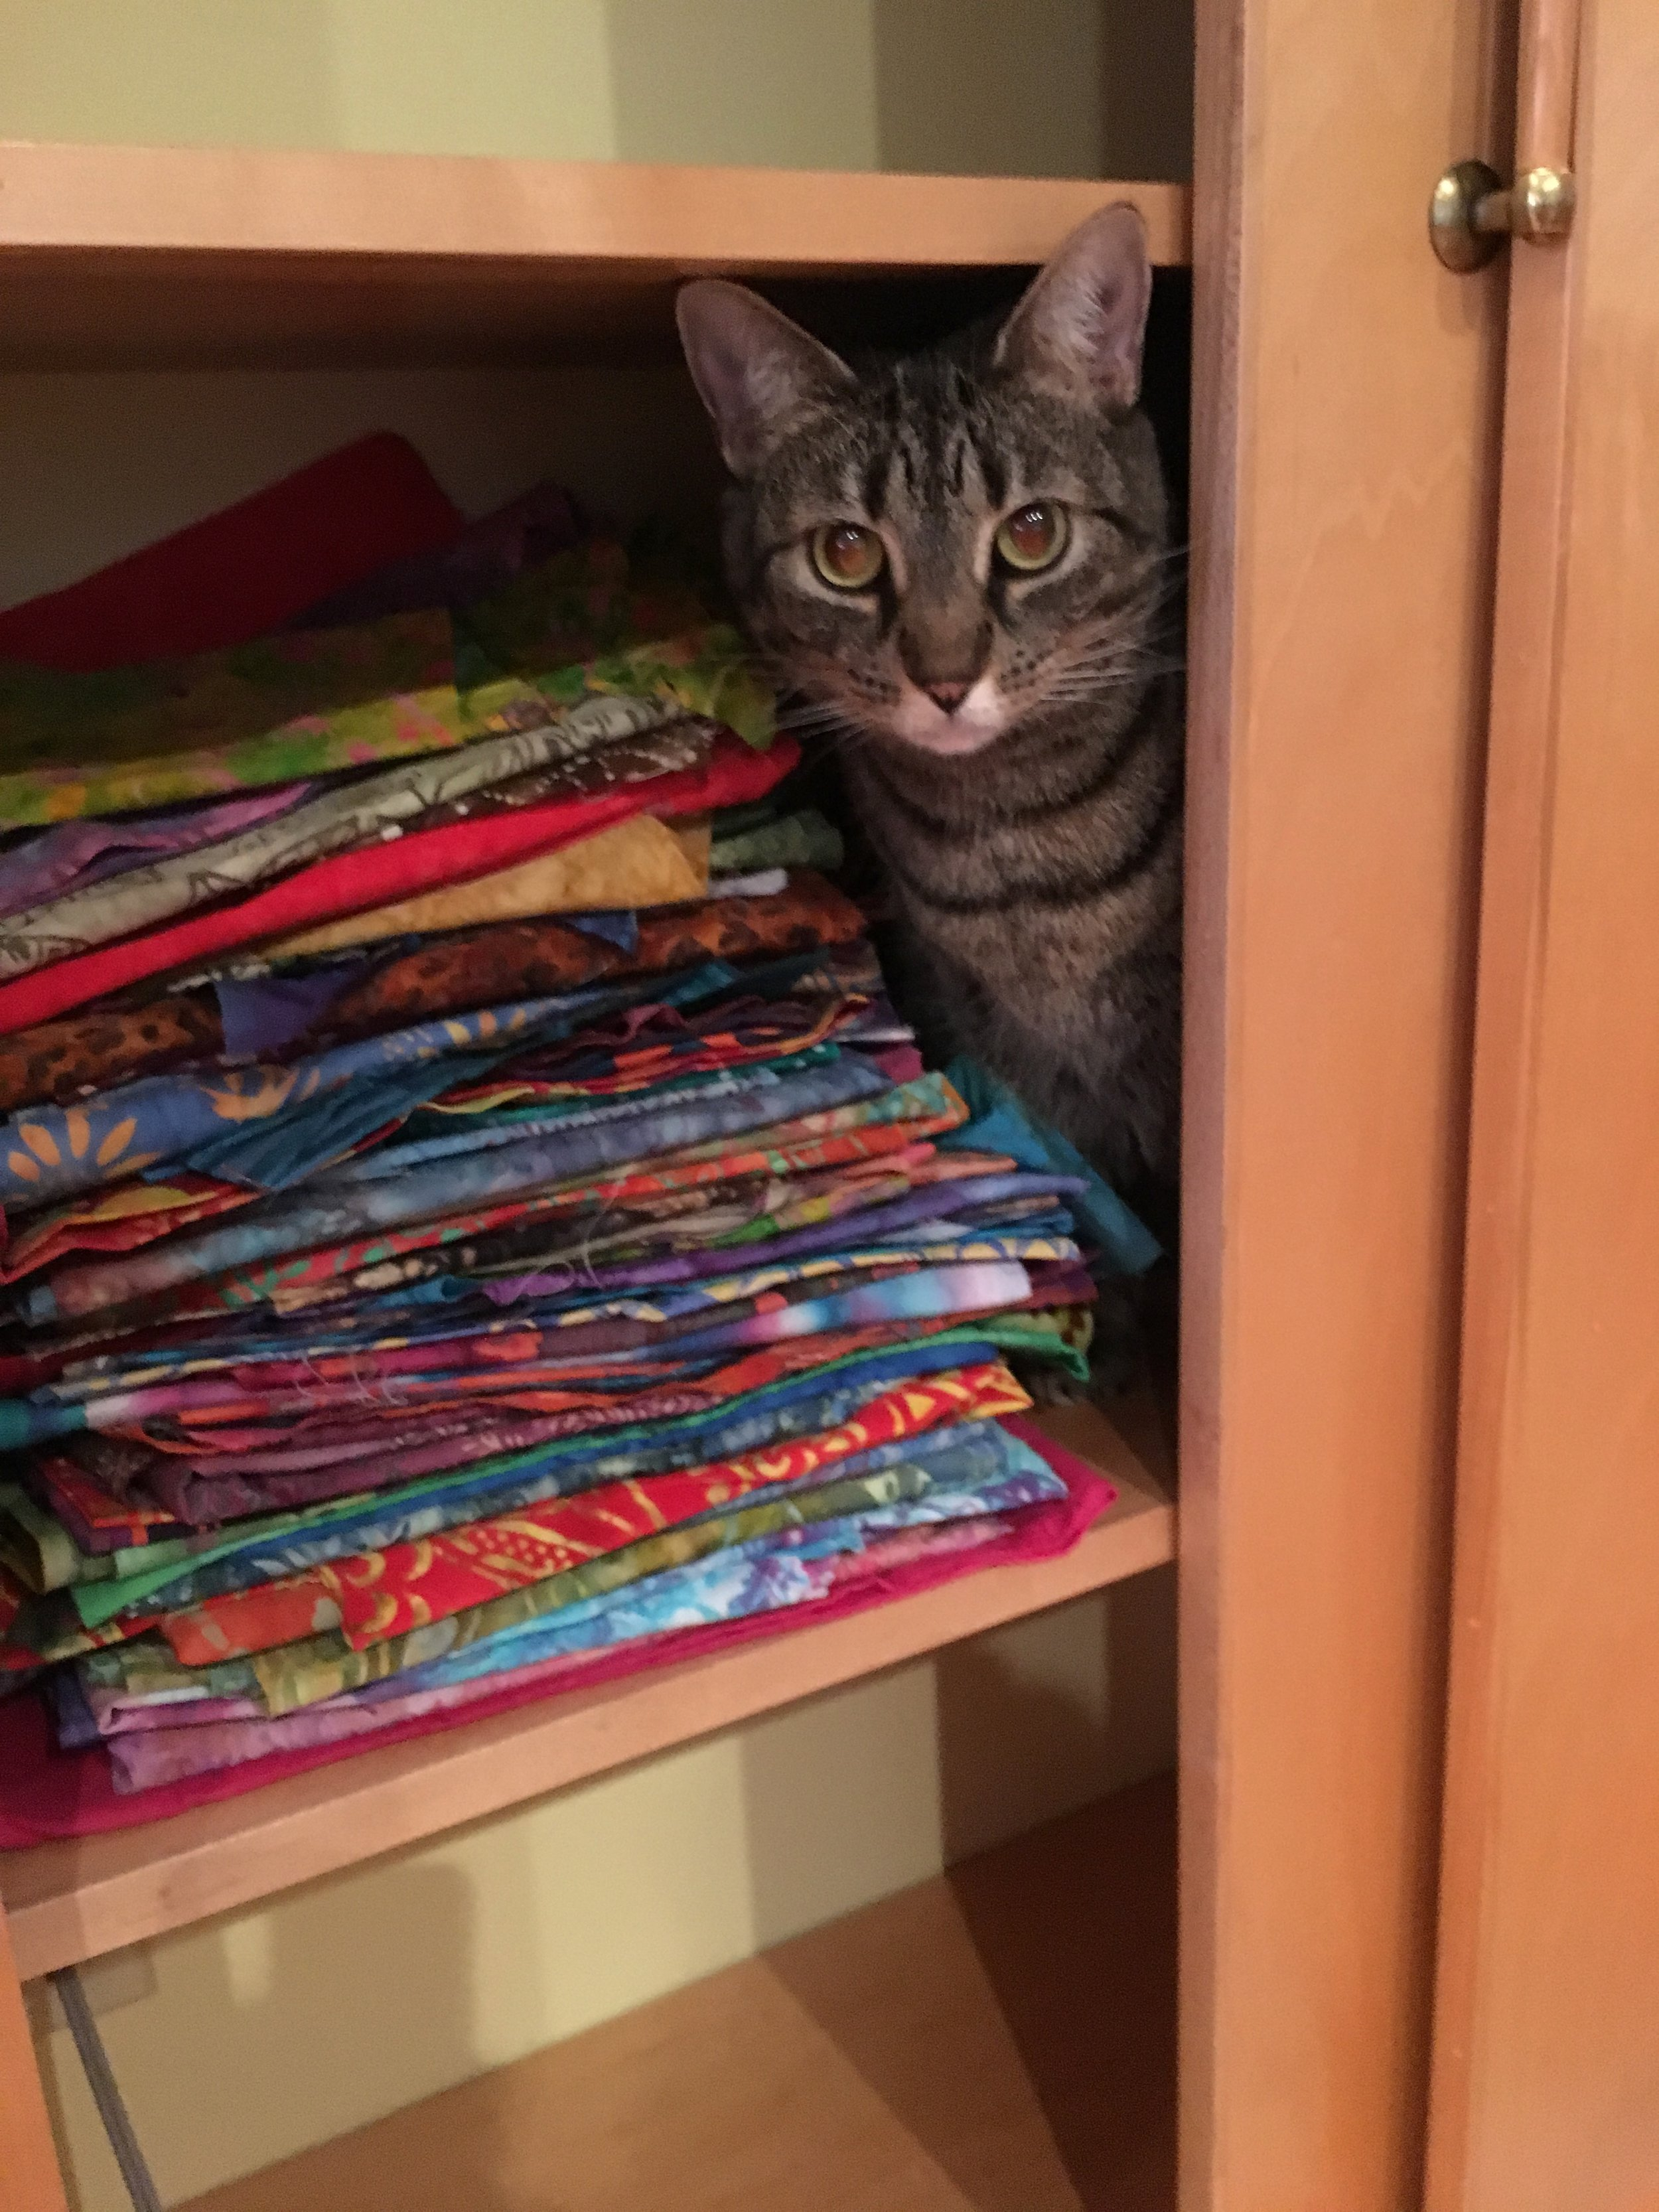 Just an update from the Quilt Built studio. After pulling all of those fabrics out it took me awhile to stack them and re organize. Even Rosie is pleased!